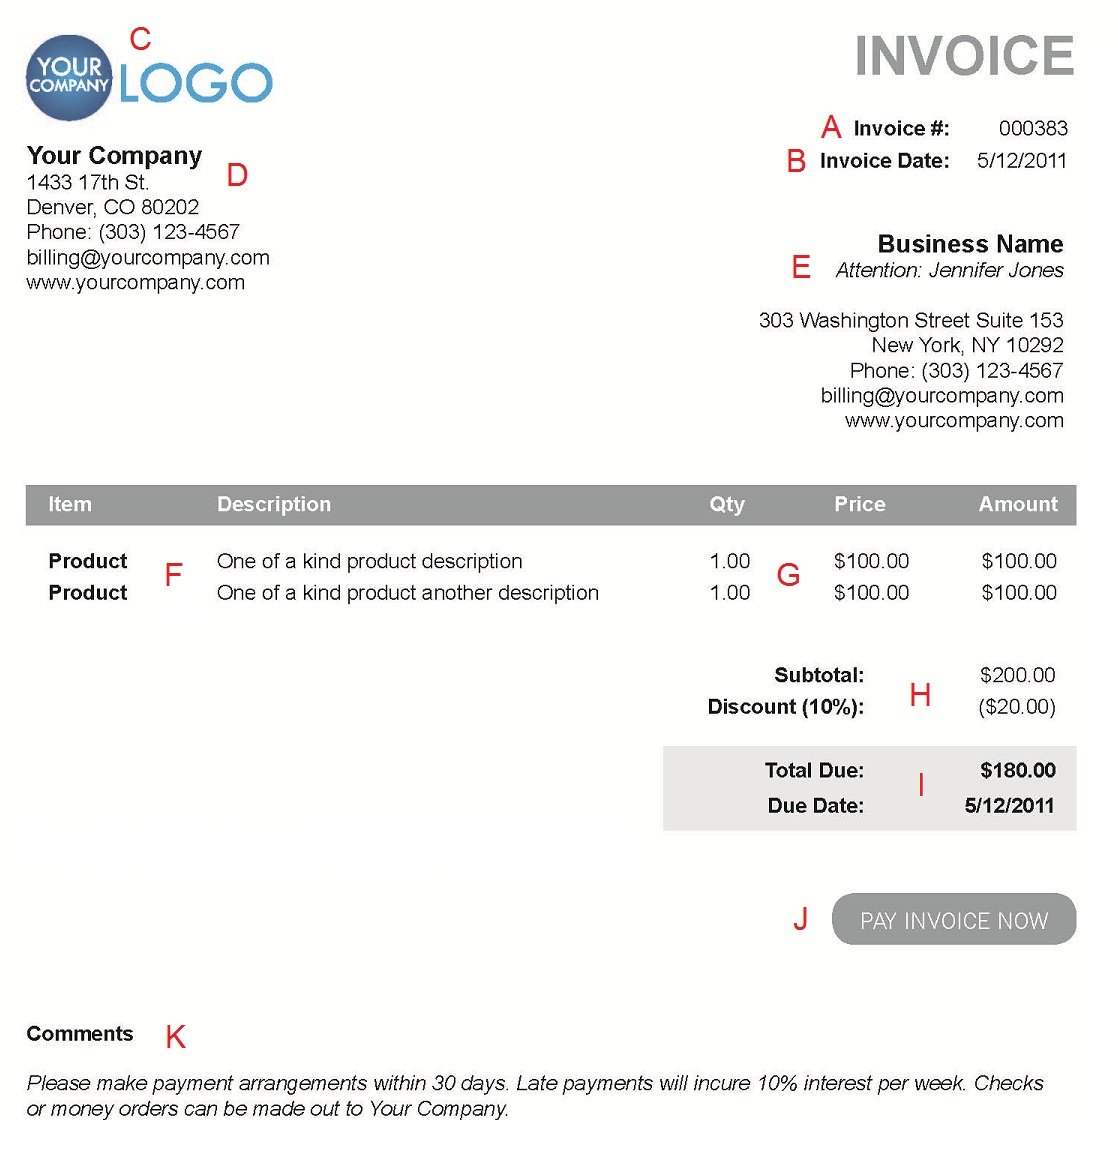 Centralasianshepherdus  Remarkable The  Different Sections Of An Electronic Payment Invoice With Excellent A  With Amazing Trucking Invoices Also Examples Of Invoice In Addition Invoice And Billing Software And Online Invoice Service As Well As Sap Invoice Management Additionally Pro Forma Invoice Fedex From Paysimplecom With Centralasianshepherdus  Excellent The  Different Sections Of An Electronic Payment Invoice With Amazing A  And Remarkable Trucking Invoices Also Examples Of Invoice In Addition Invoice And Billing Software From Paysimplecom